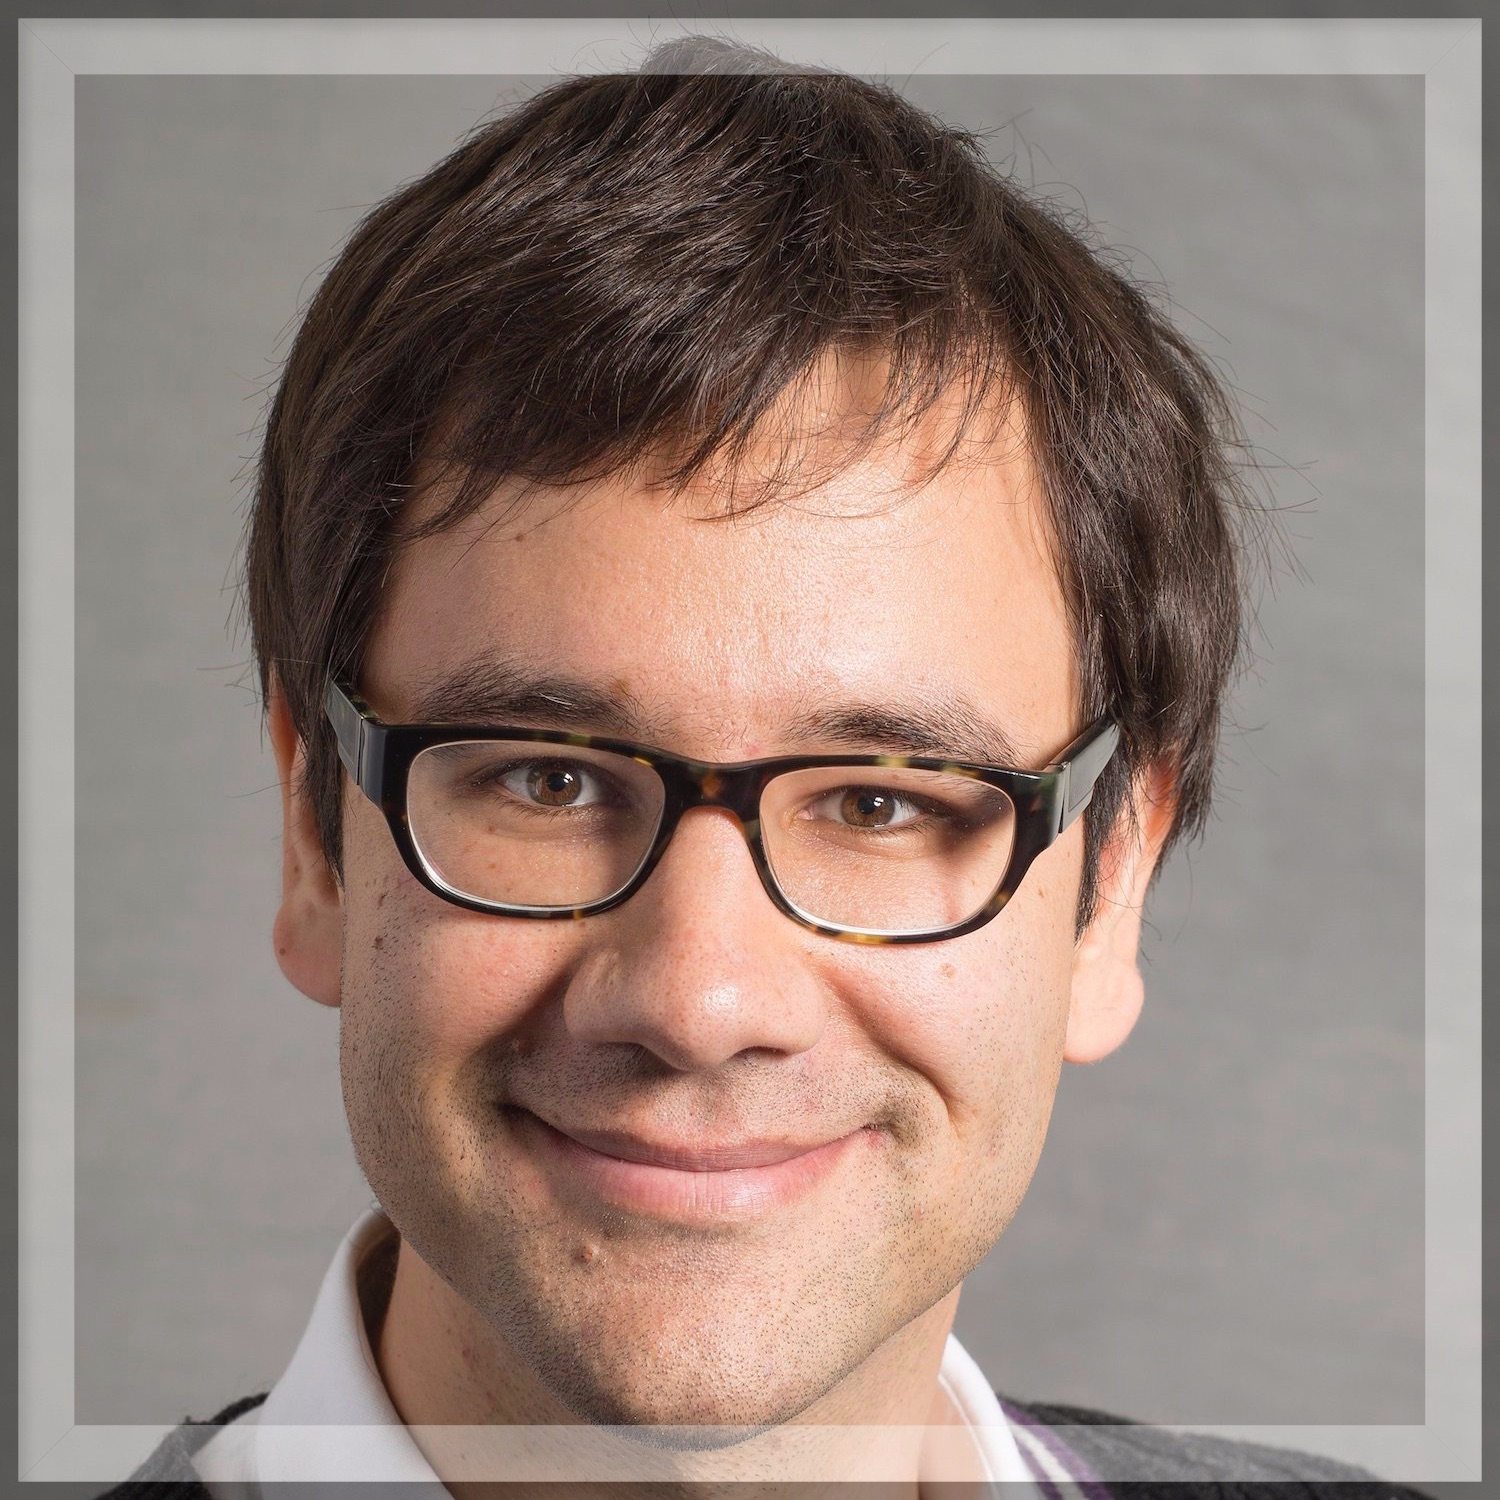 Christophe Dessimoz, University of Lausanne, University College London, and Swiss Institute of Bioinformatics is the ISCB Overton Prize winner